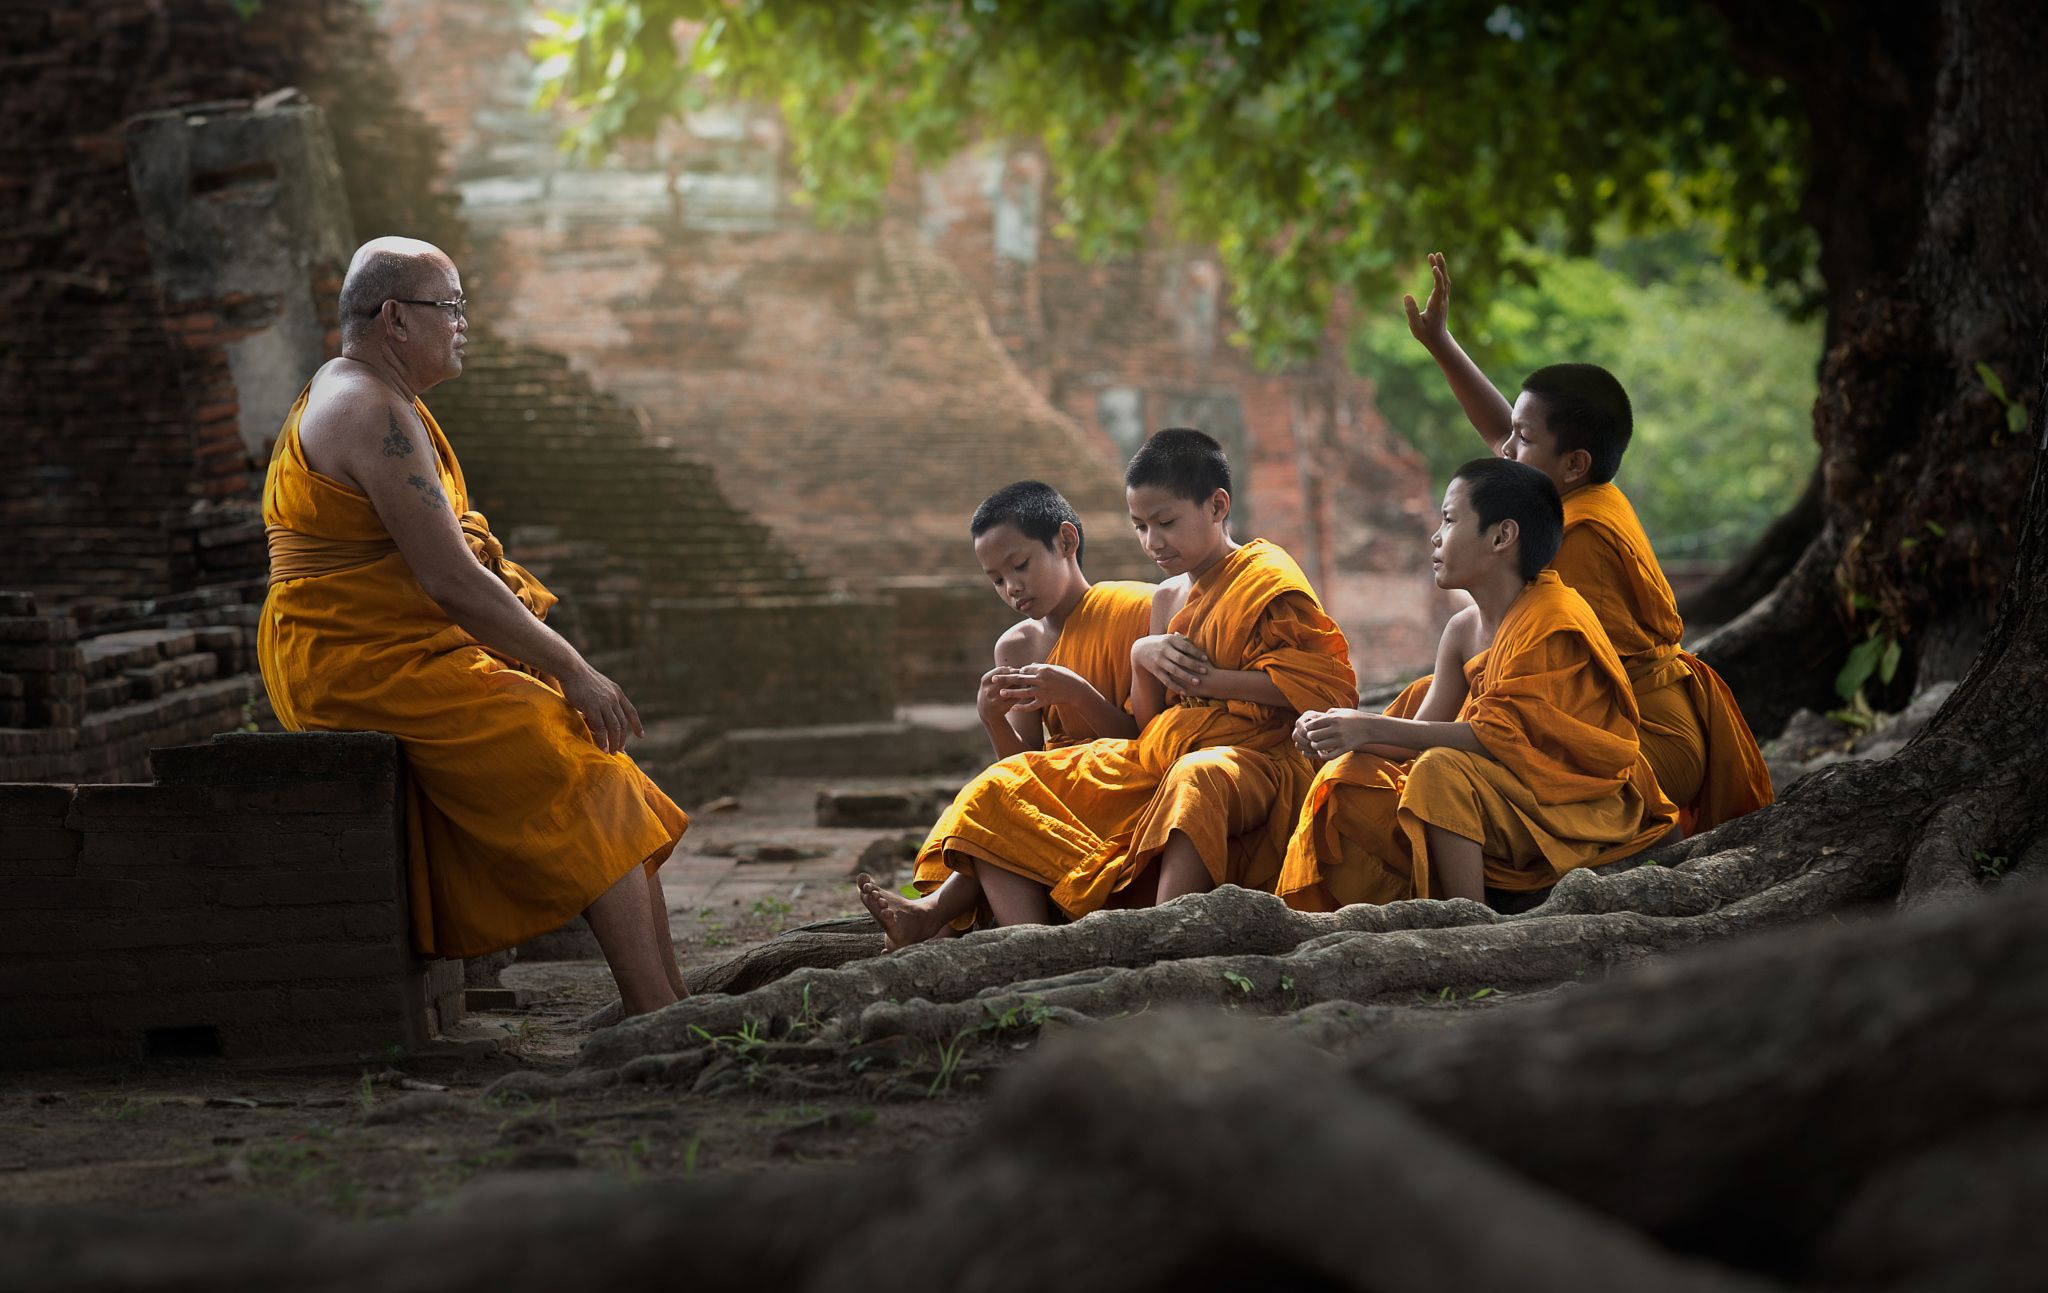 Buddha monk teaching his buddha students in ancient temple ...